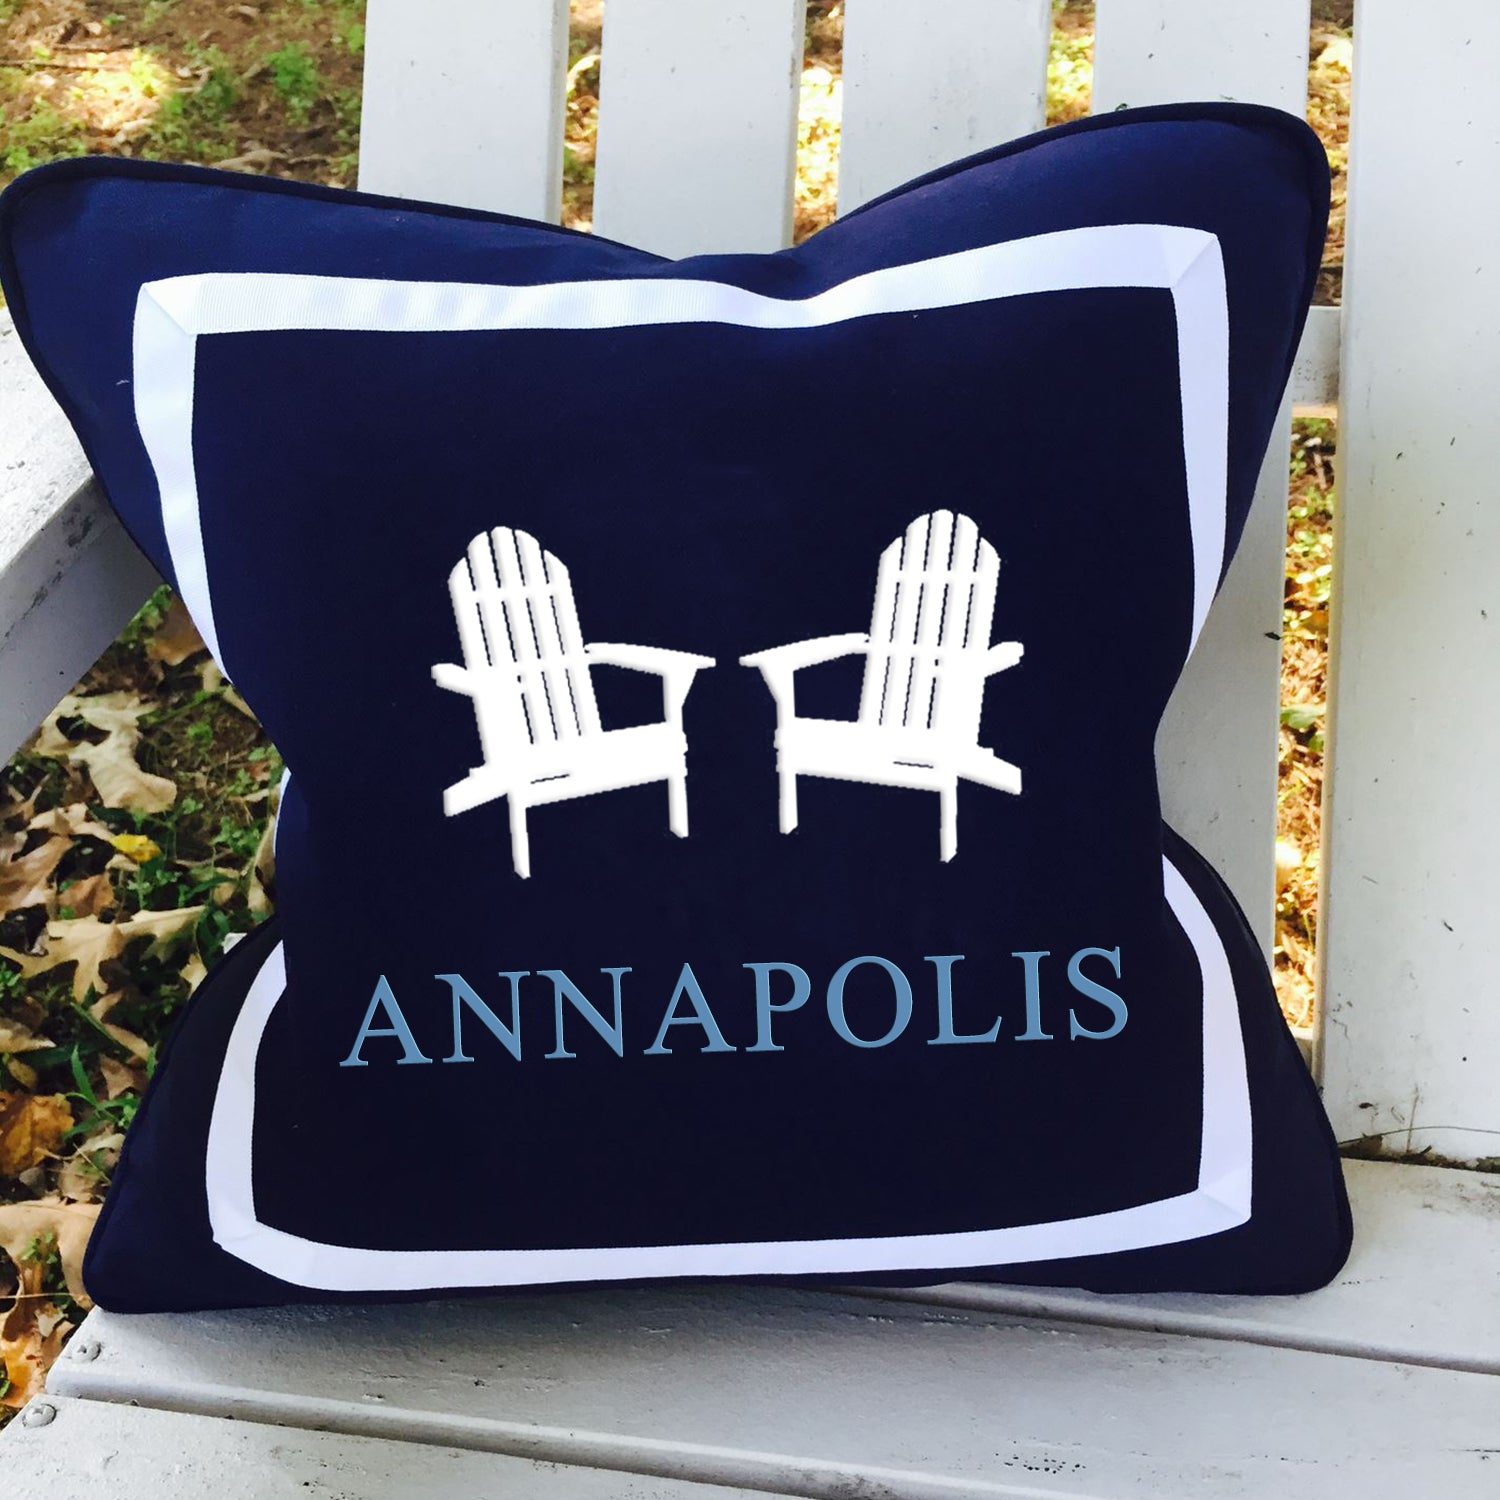 Adirondack Pair with Annapolis on Outdoor Navy 18""